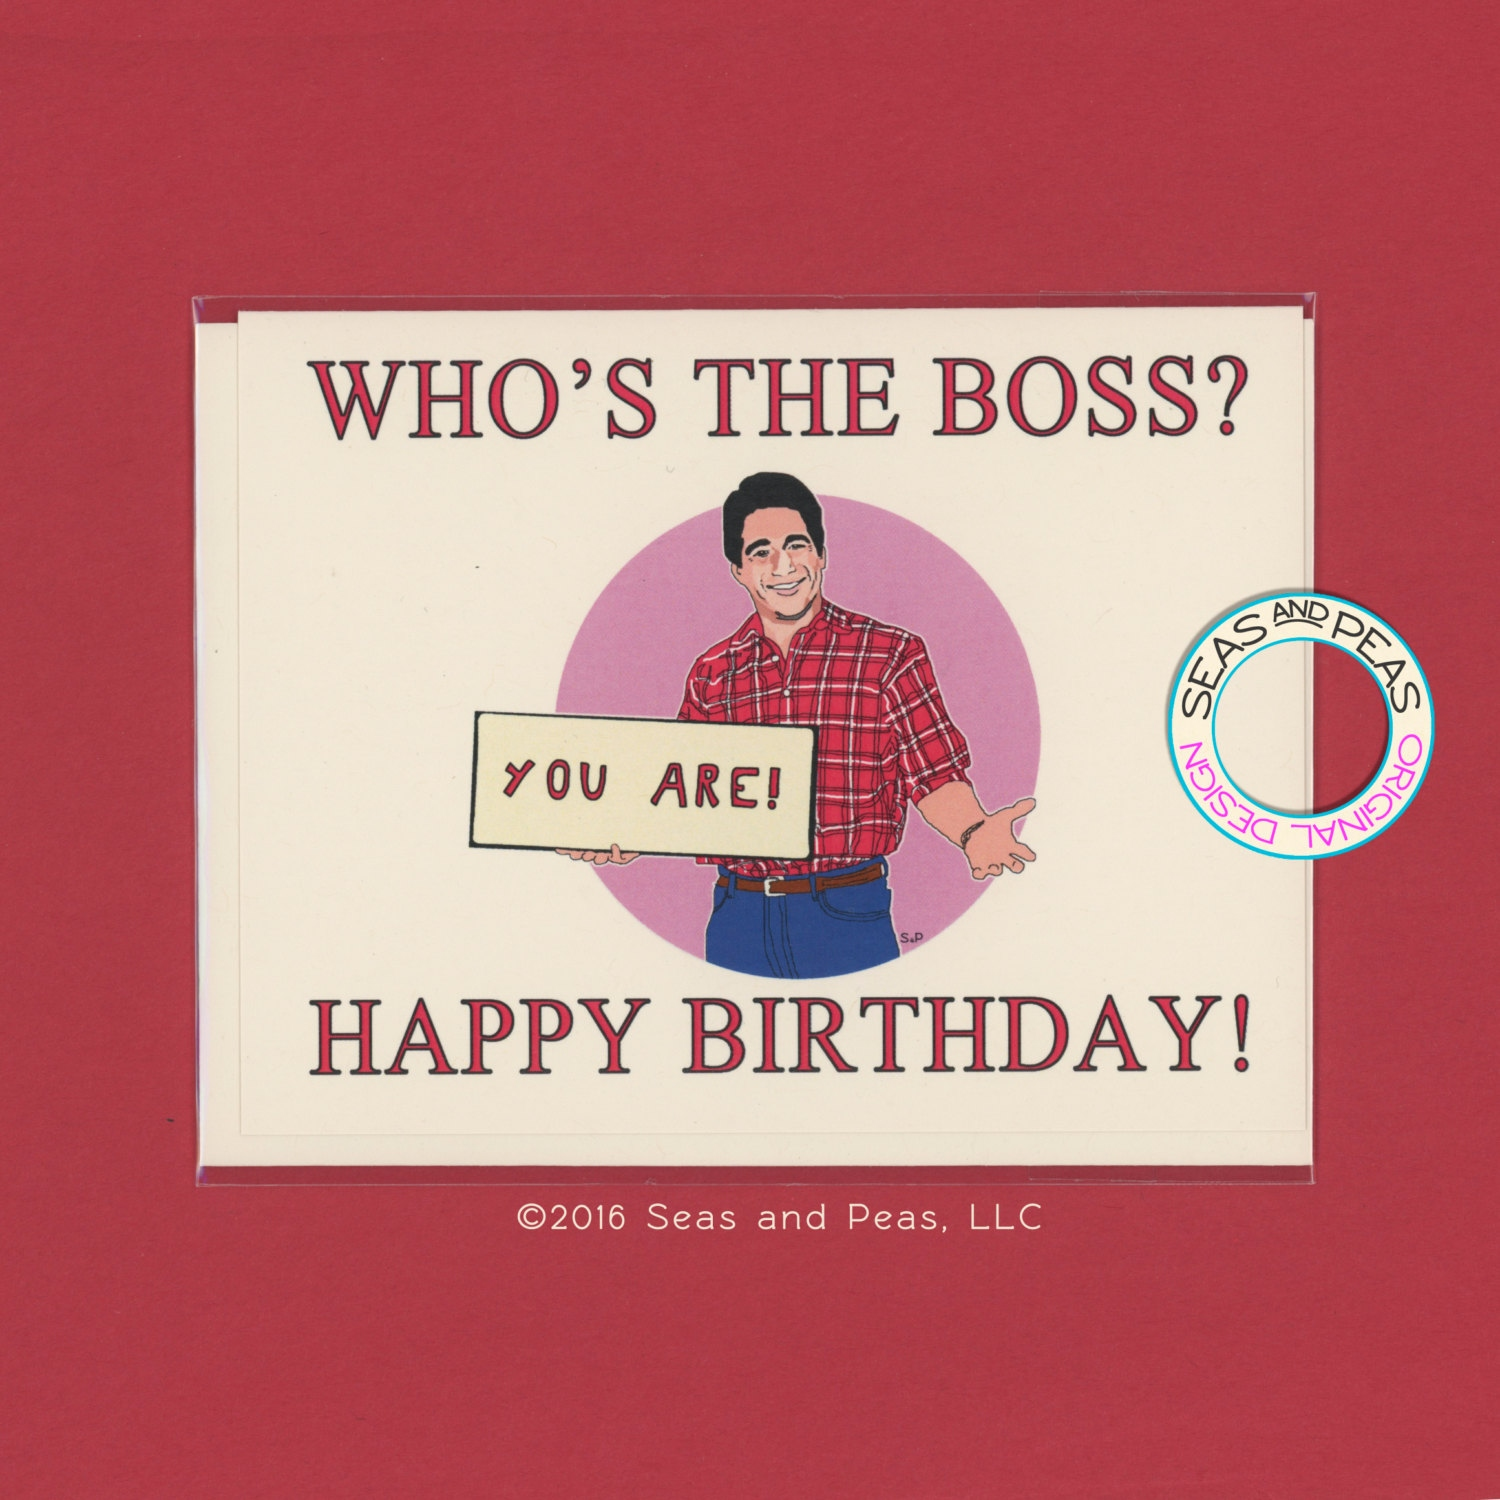 birthday card for boss funny ; boss-birthday-card-best-of-who-s-the-boss-birthday-funny-birthday-card-tony-danza-of-boss-birthday-card